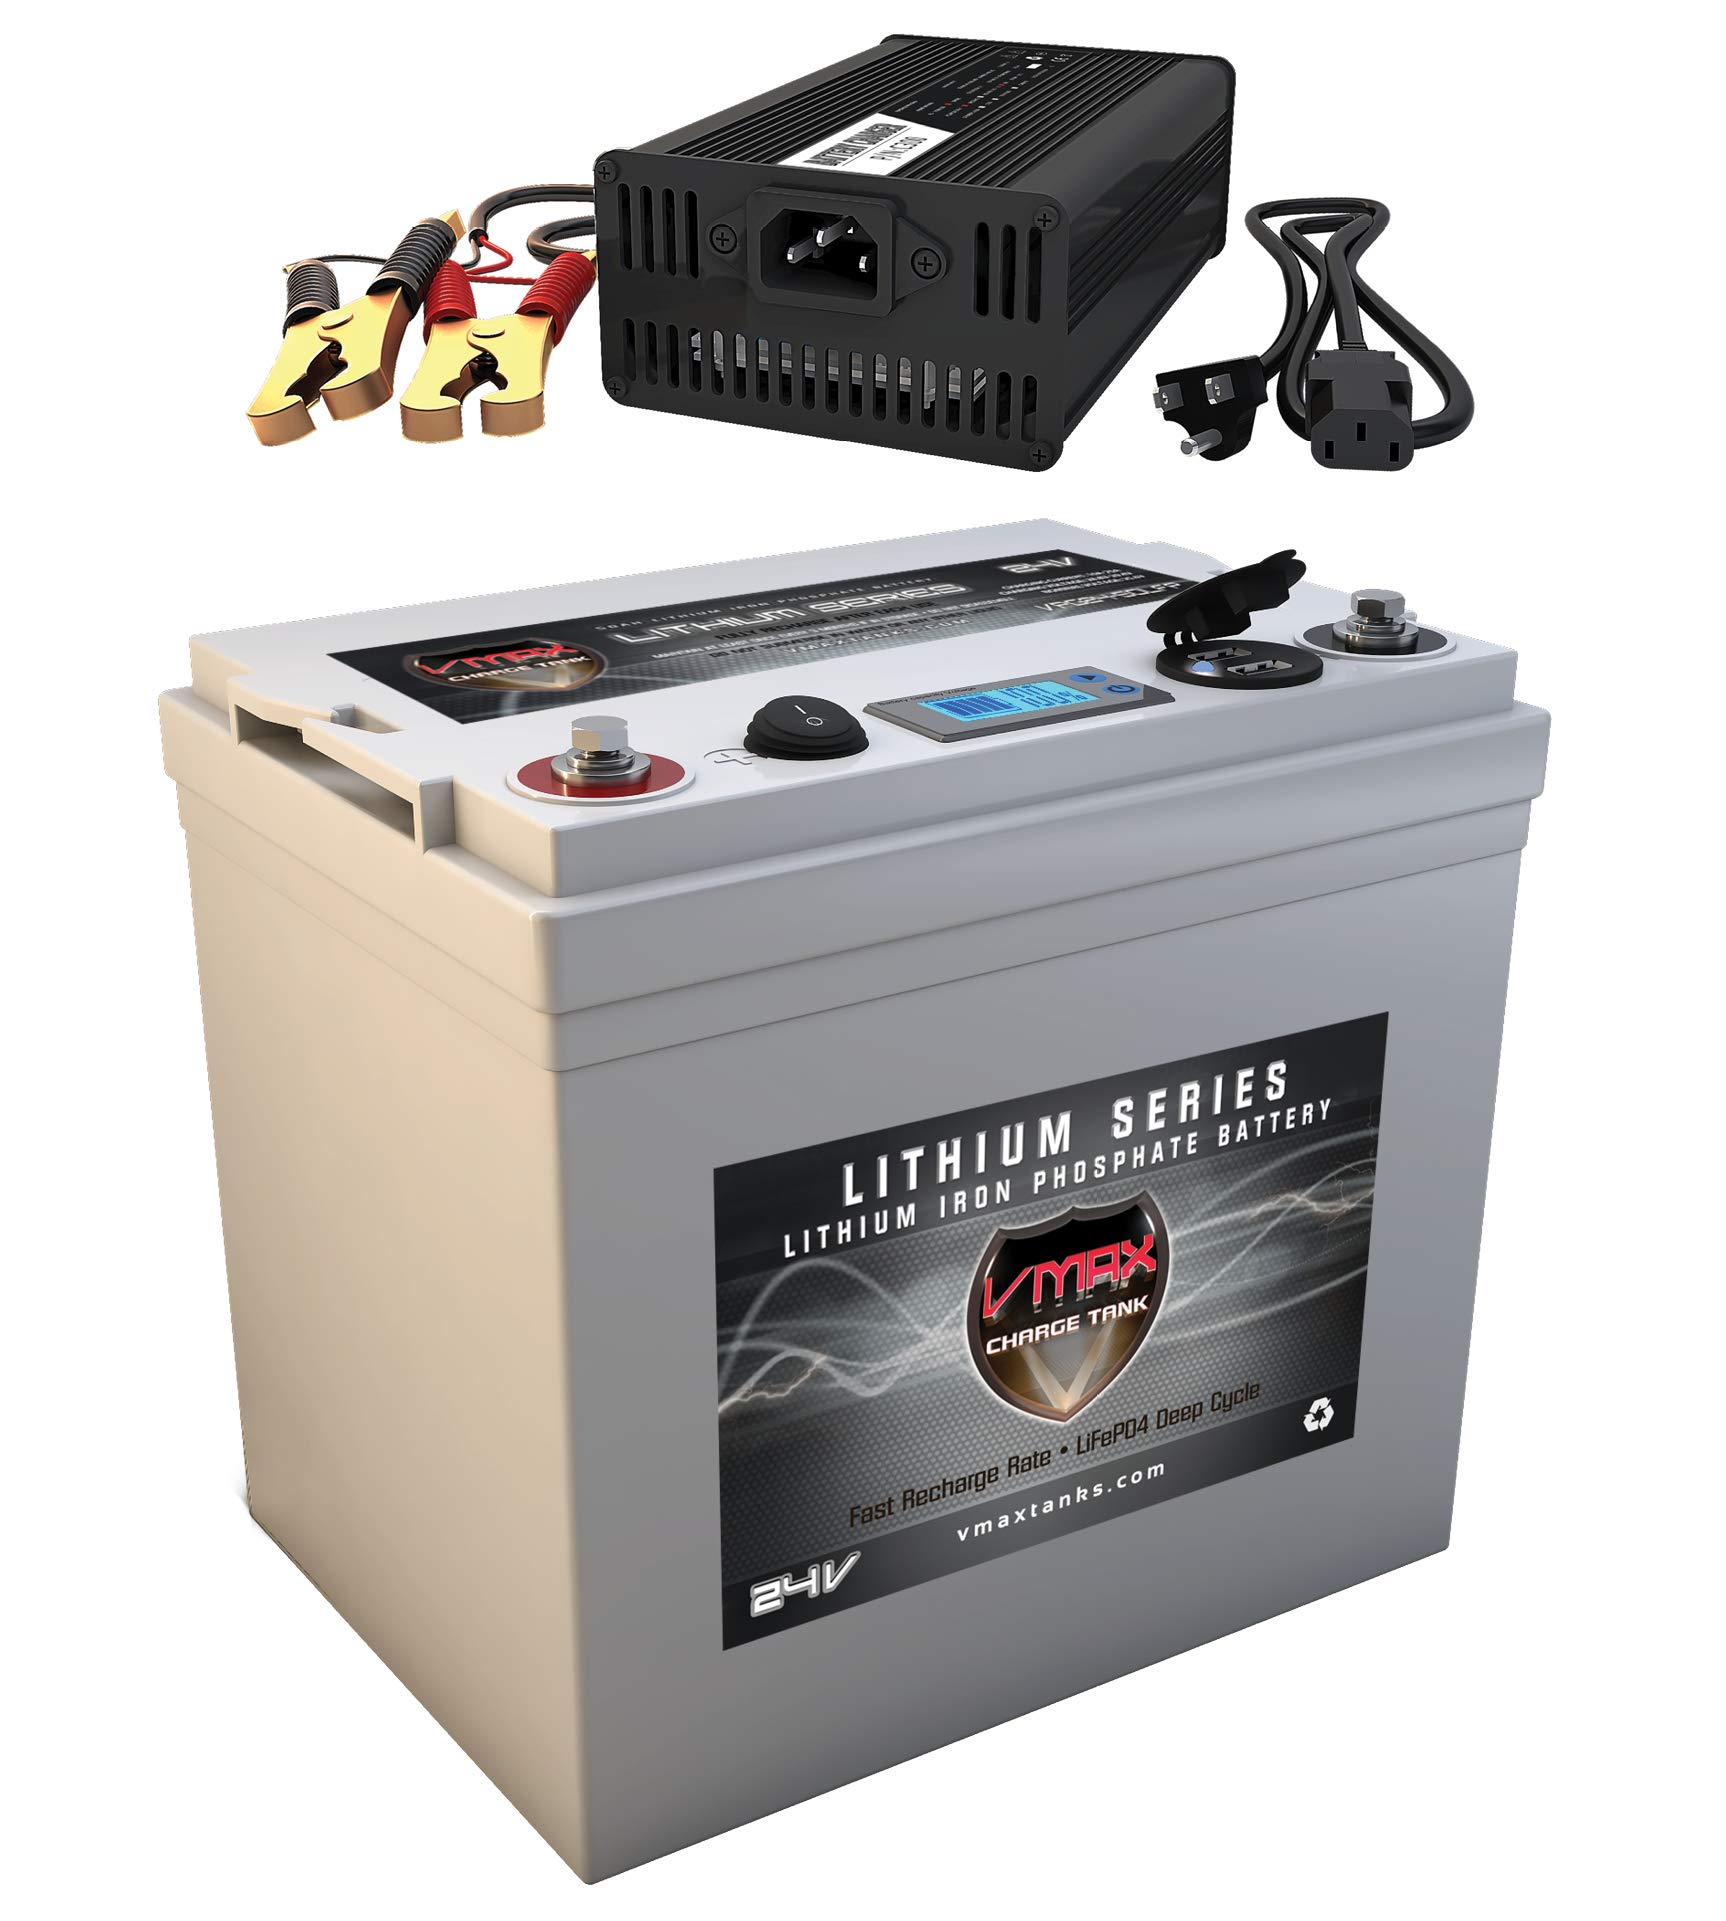 VMAX VPG24C-50LFP for 24 Volt Battery for DC Power Supply 24V 50Ah LiFePo4 Battery + Charger: Lithium-Iron Phosphate Battery w/BMS, USB Outputs, LCD Display (24V 50Ah LiFePo4, Weighs 21lbs) by VMAXTANKS (Image #1)